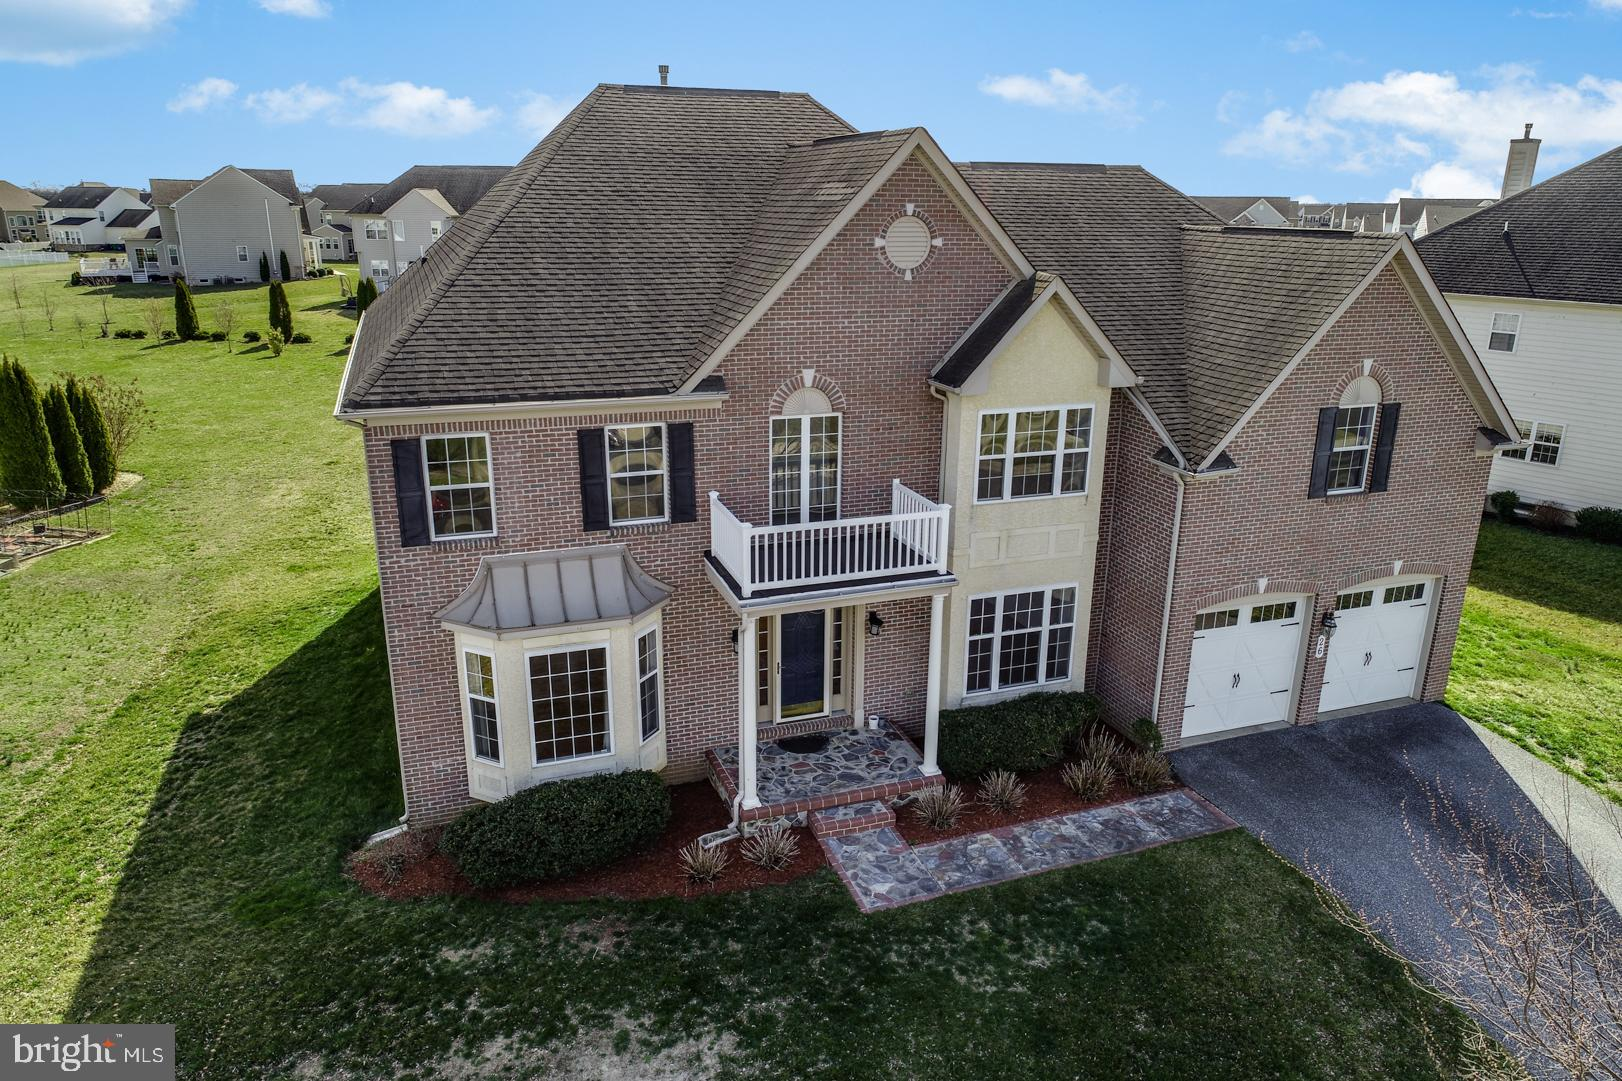 Visit this home virtually: http://www.vht.com/434049192/IDXS - The Estates at St Annes is a popular